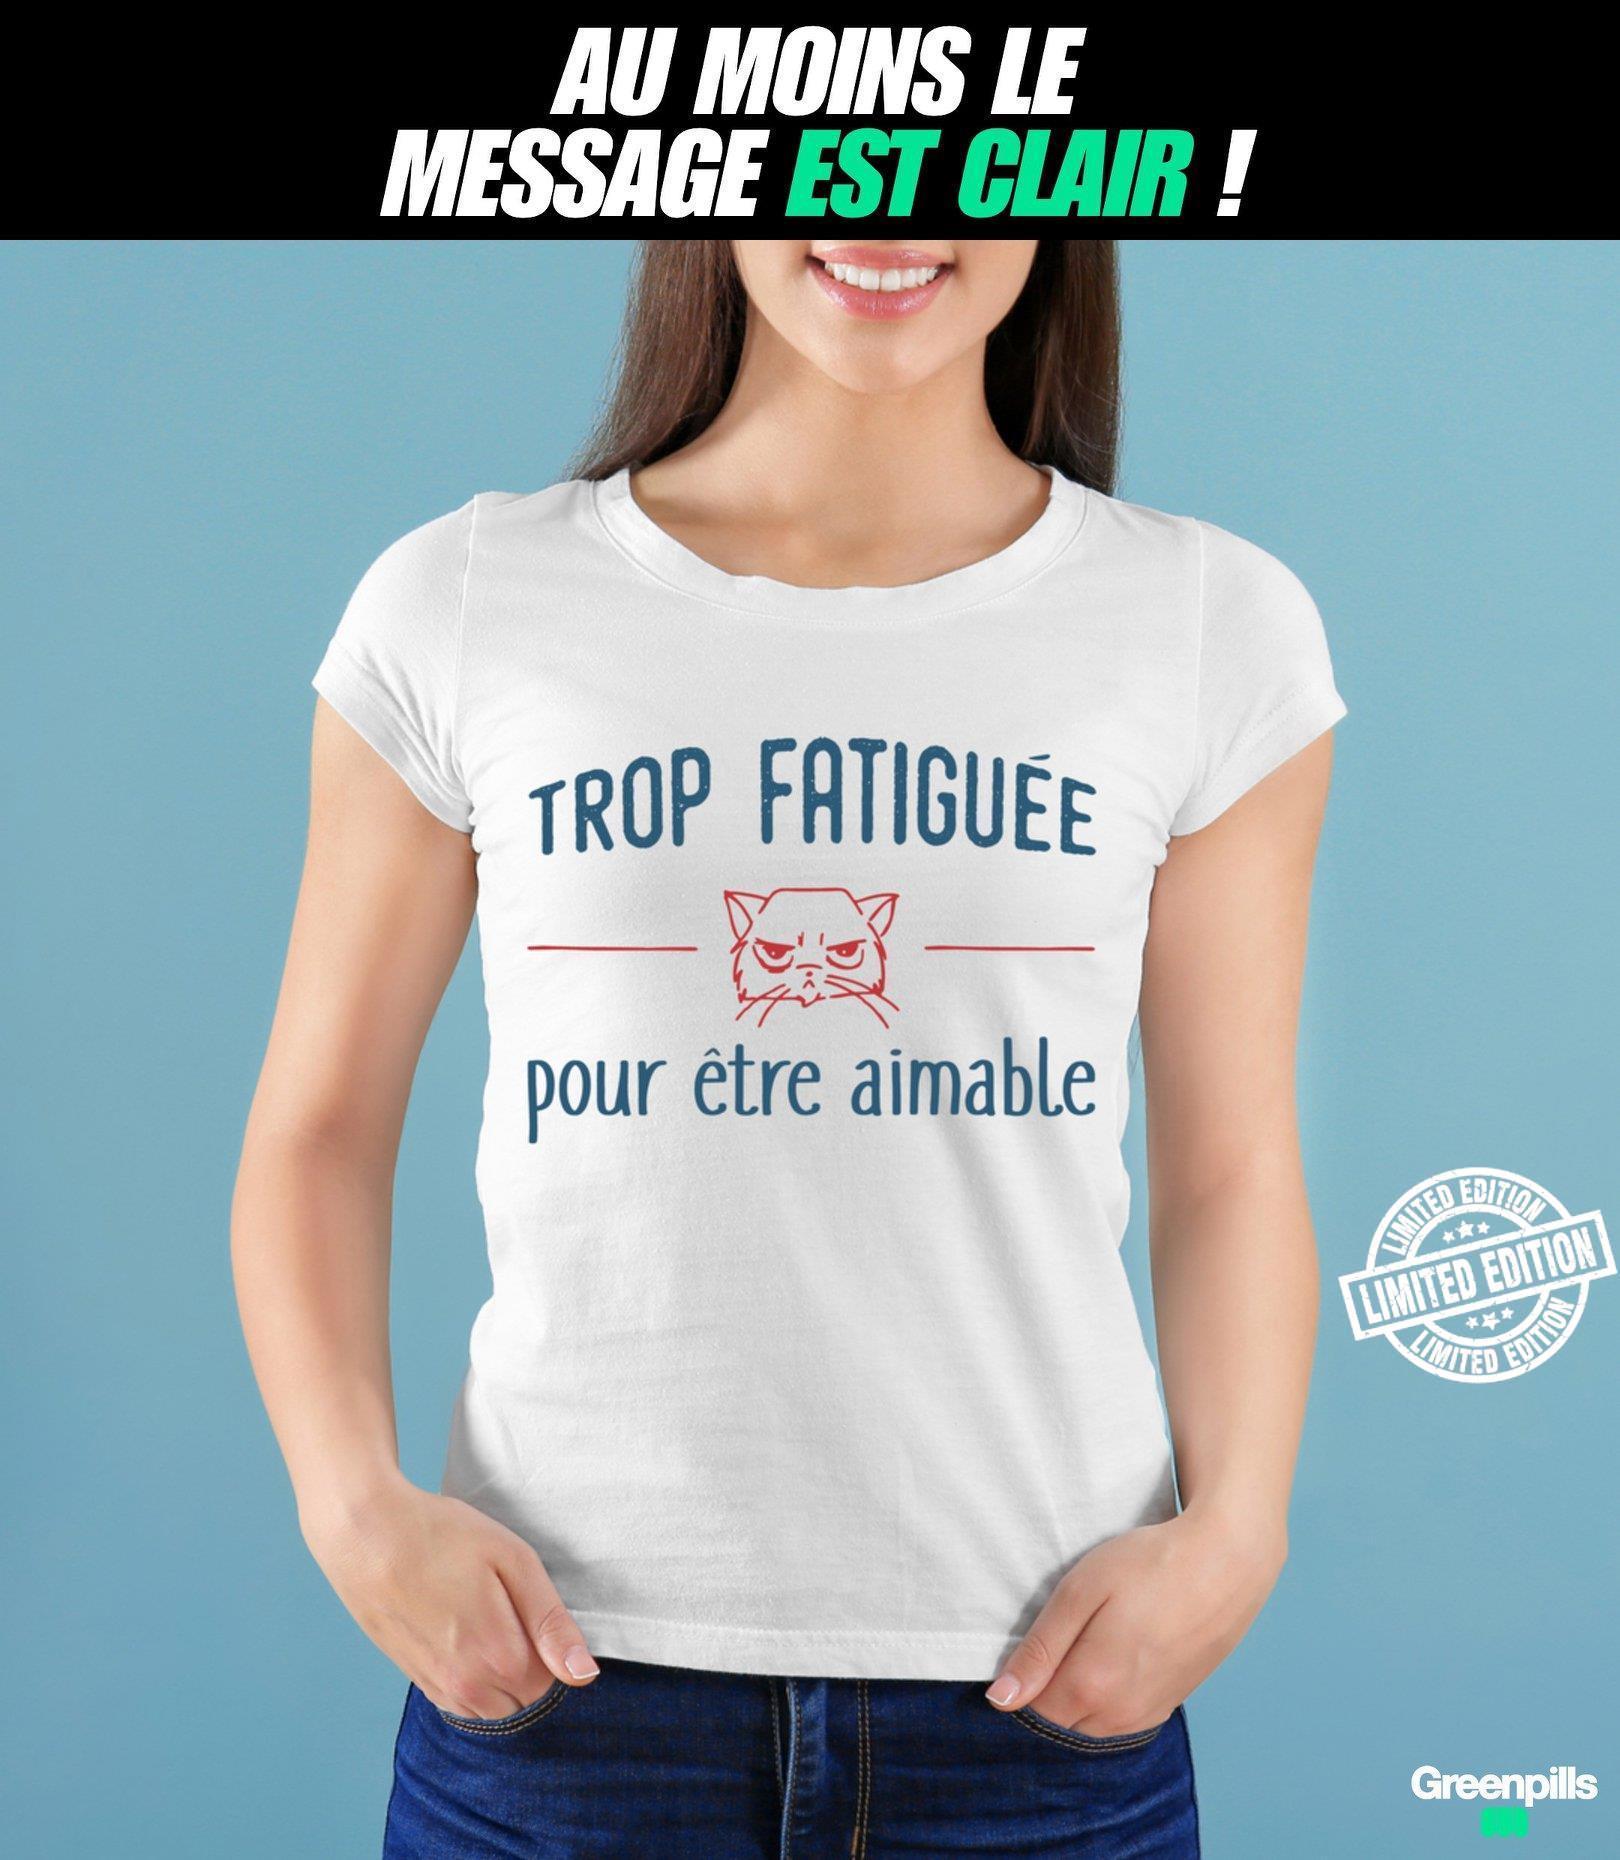 Trop fatiguee pour etre aimable shirt